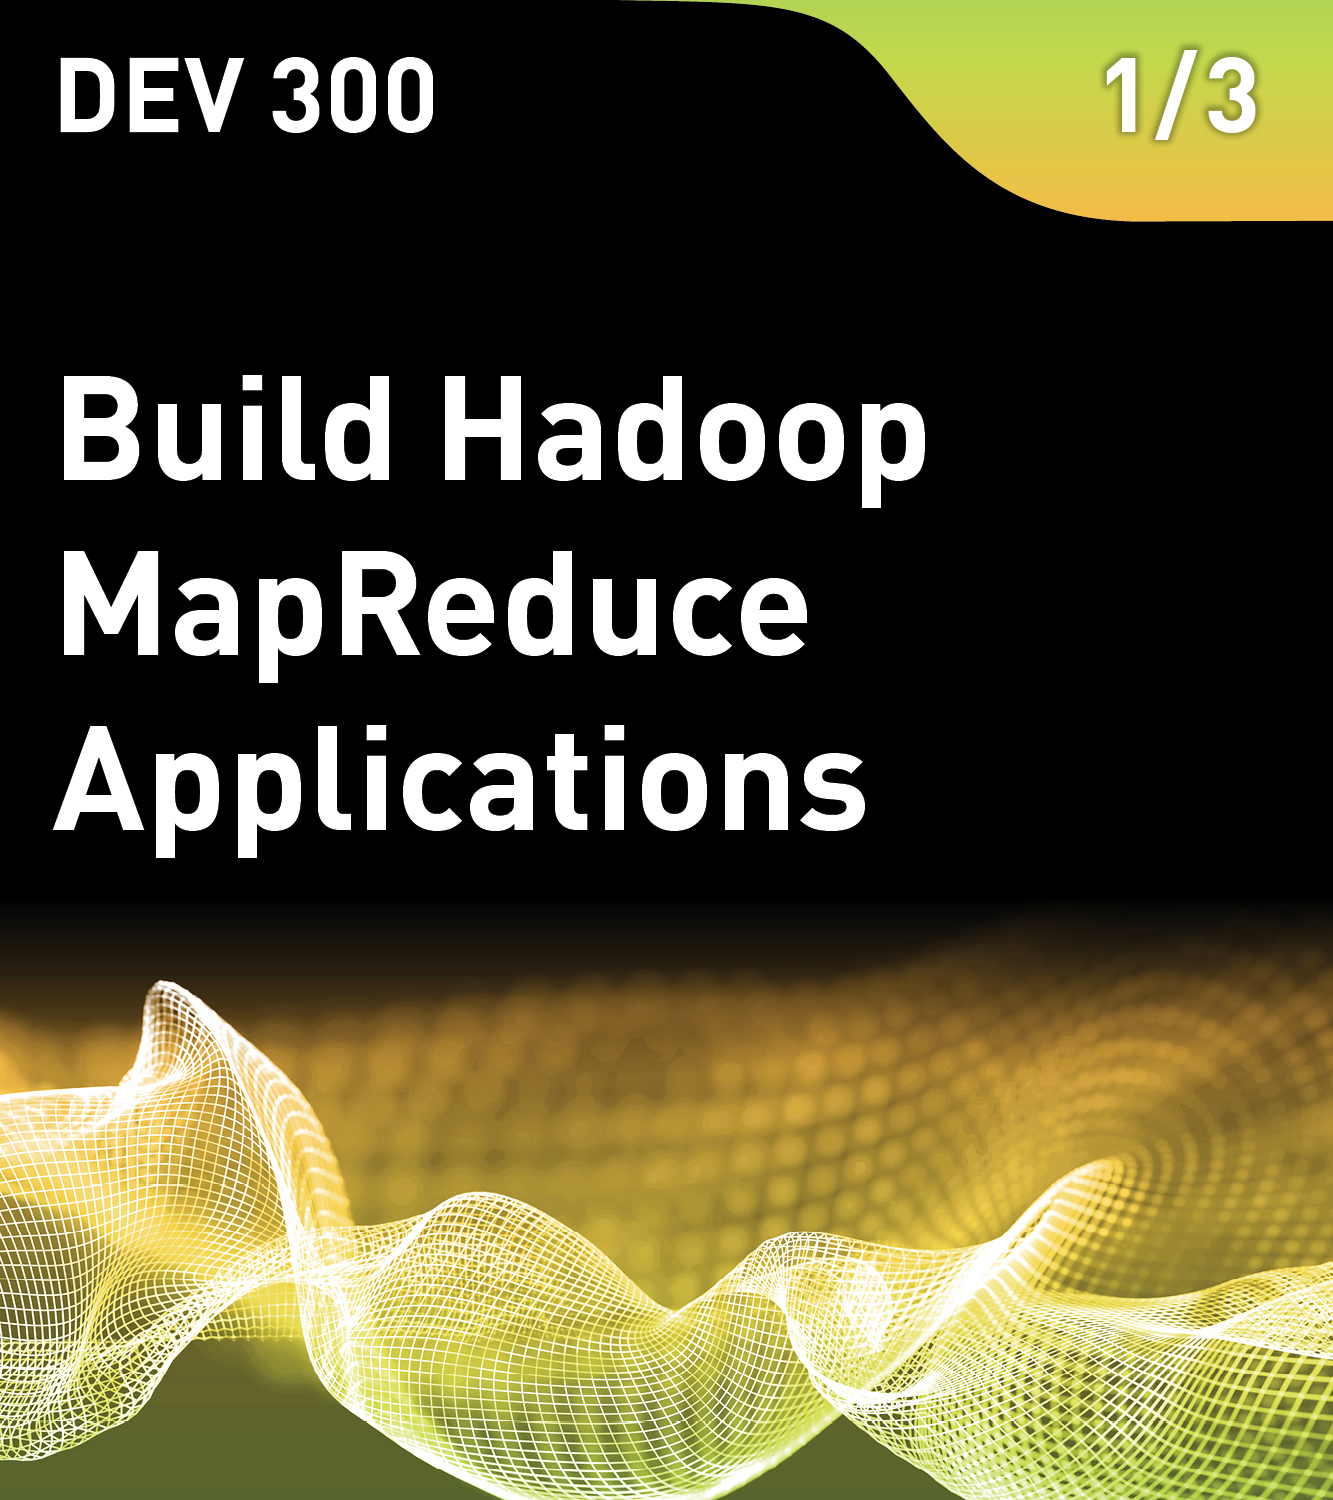 Build Hadoop MapReduce Applications